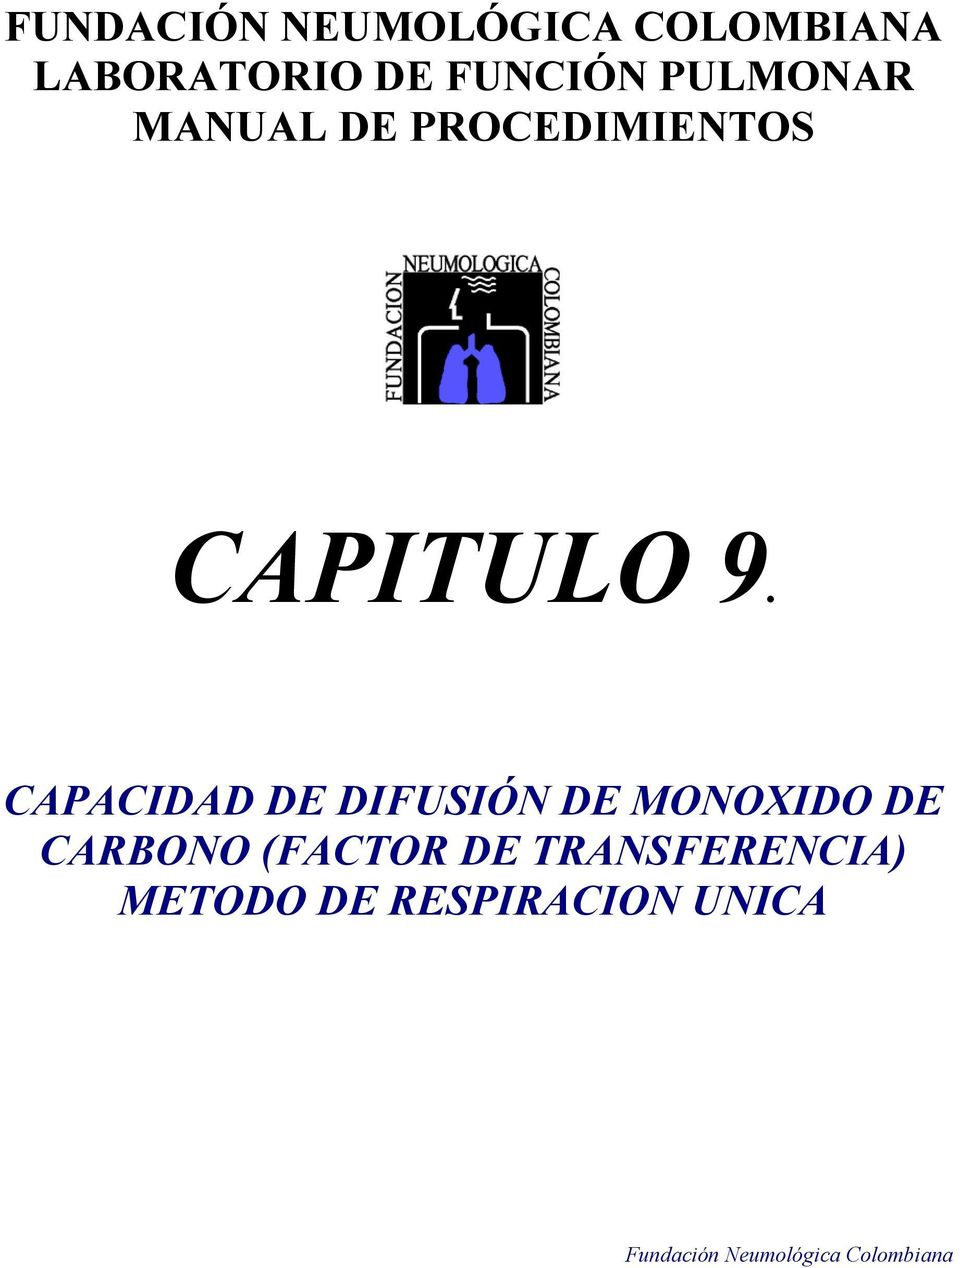 CAPITULO 9.